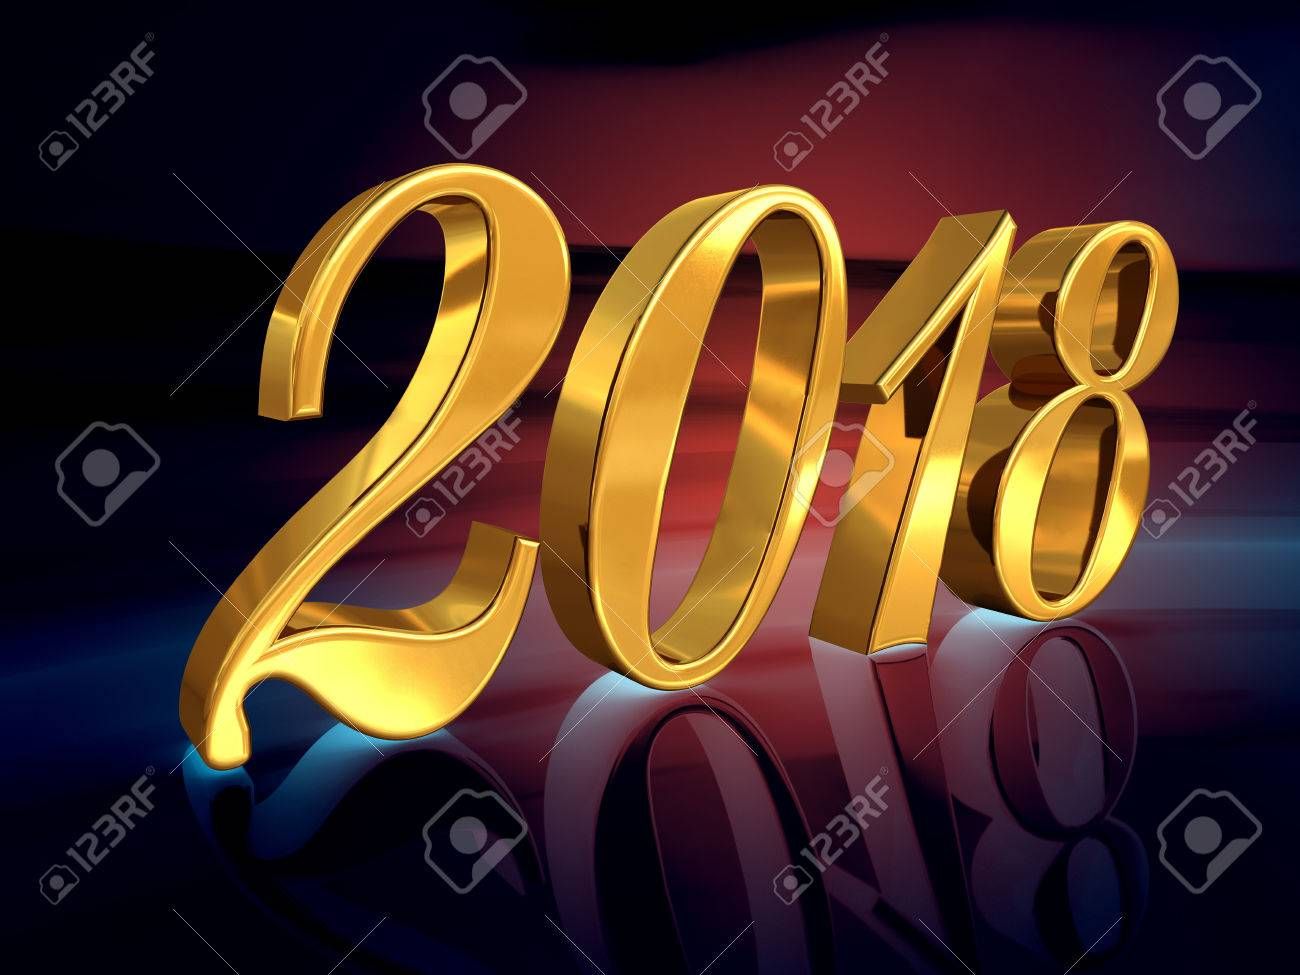 Gold 2018 Celebration Number, Golden 3D Numbers on a Festive Background, 2018 Happy New Year or Christmas Background Creative Greeting Card Design, for Flyers, Invitation, Posters, Brochure, Banners - 80371742